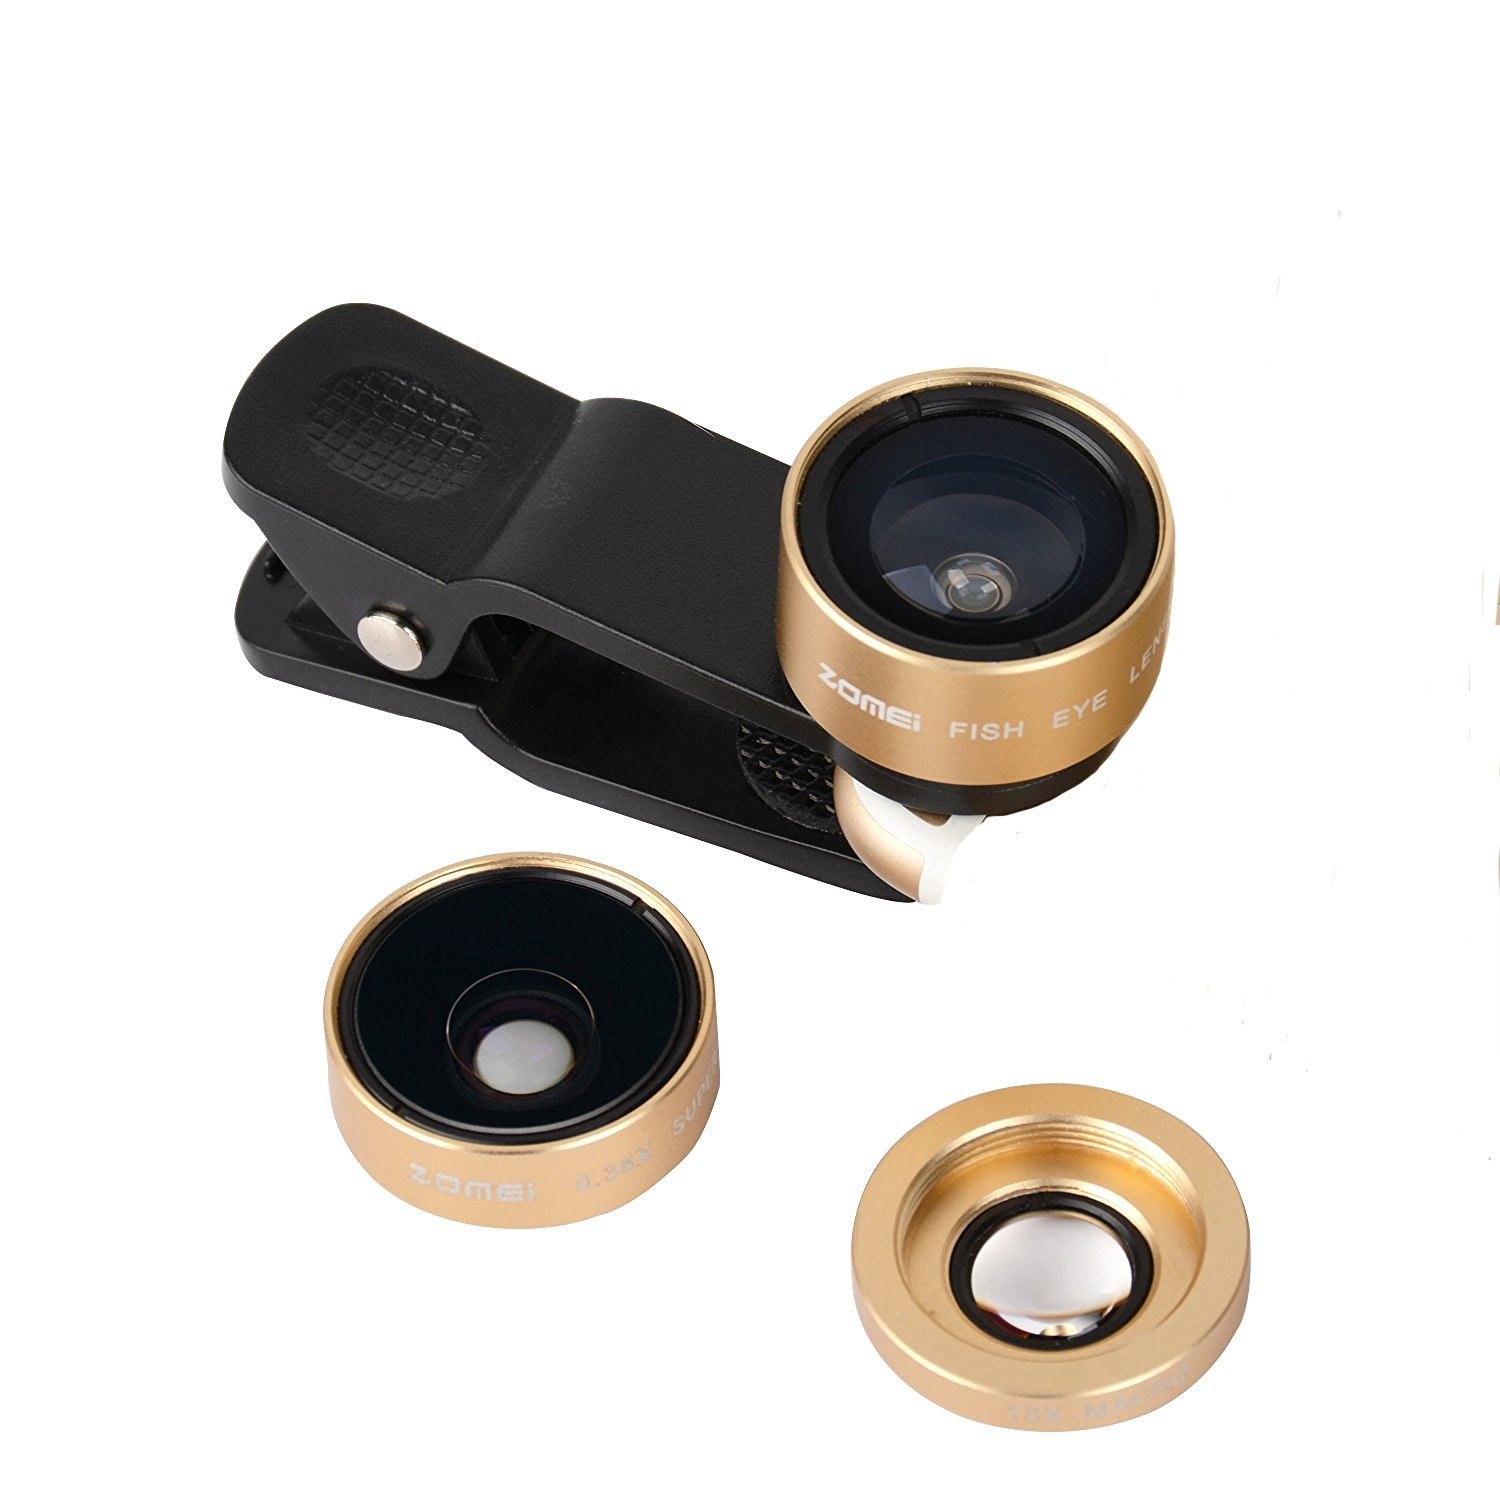 Zomei Universal 3 in 1 Clip-On Cell Phone Lens 0.36X Wide Angle + Macro Phone Lens + Fish Eye Lens For iphone Samsung Ipad(Champaign Gold)